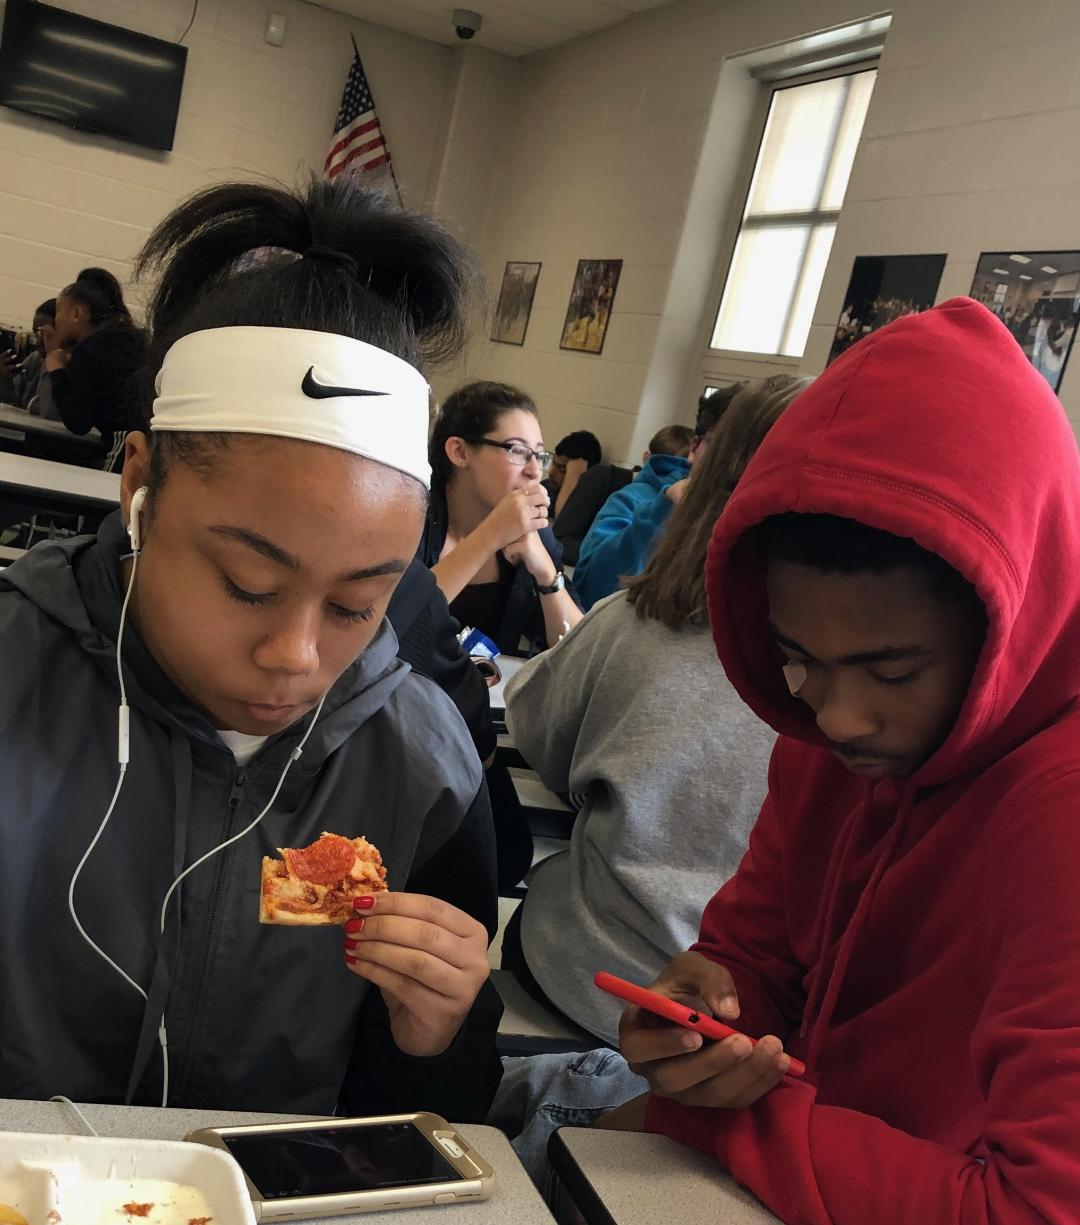 Macayla Miles (junior) and Corey Cooke (senior) enjoy their free lunch period preoccupied with their cellphones.